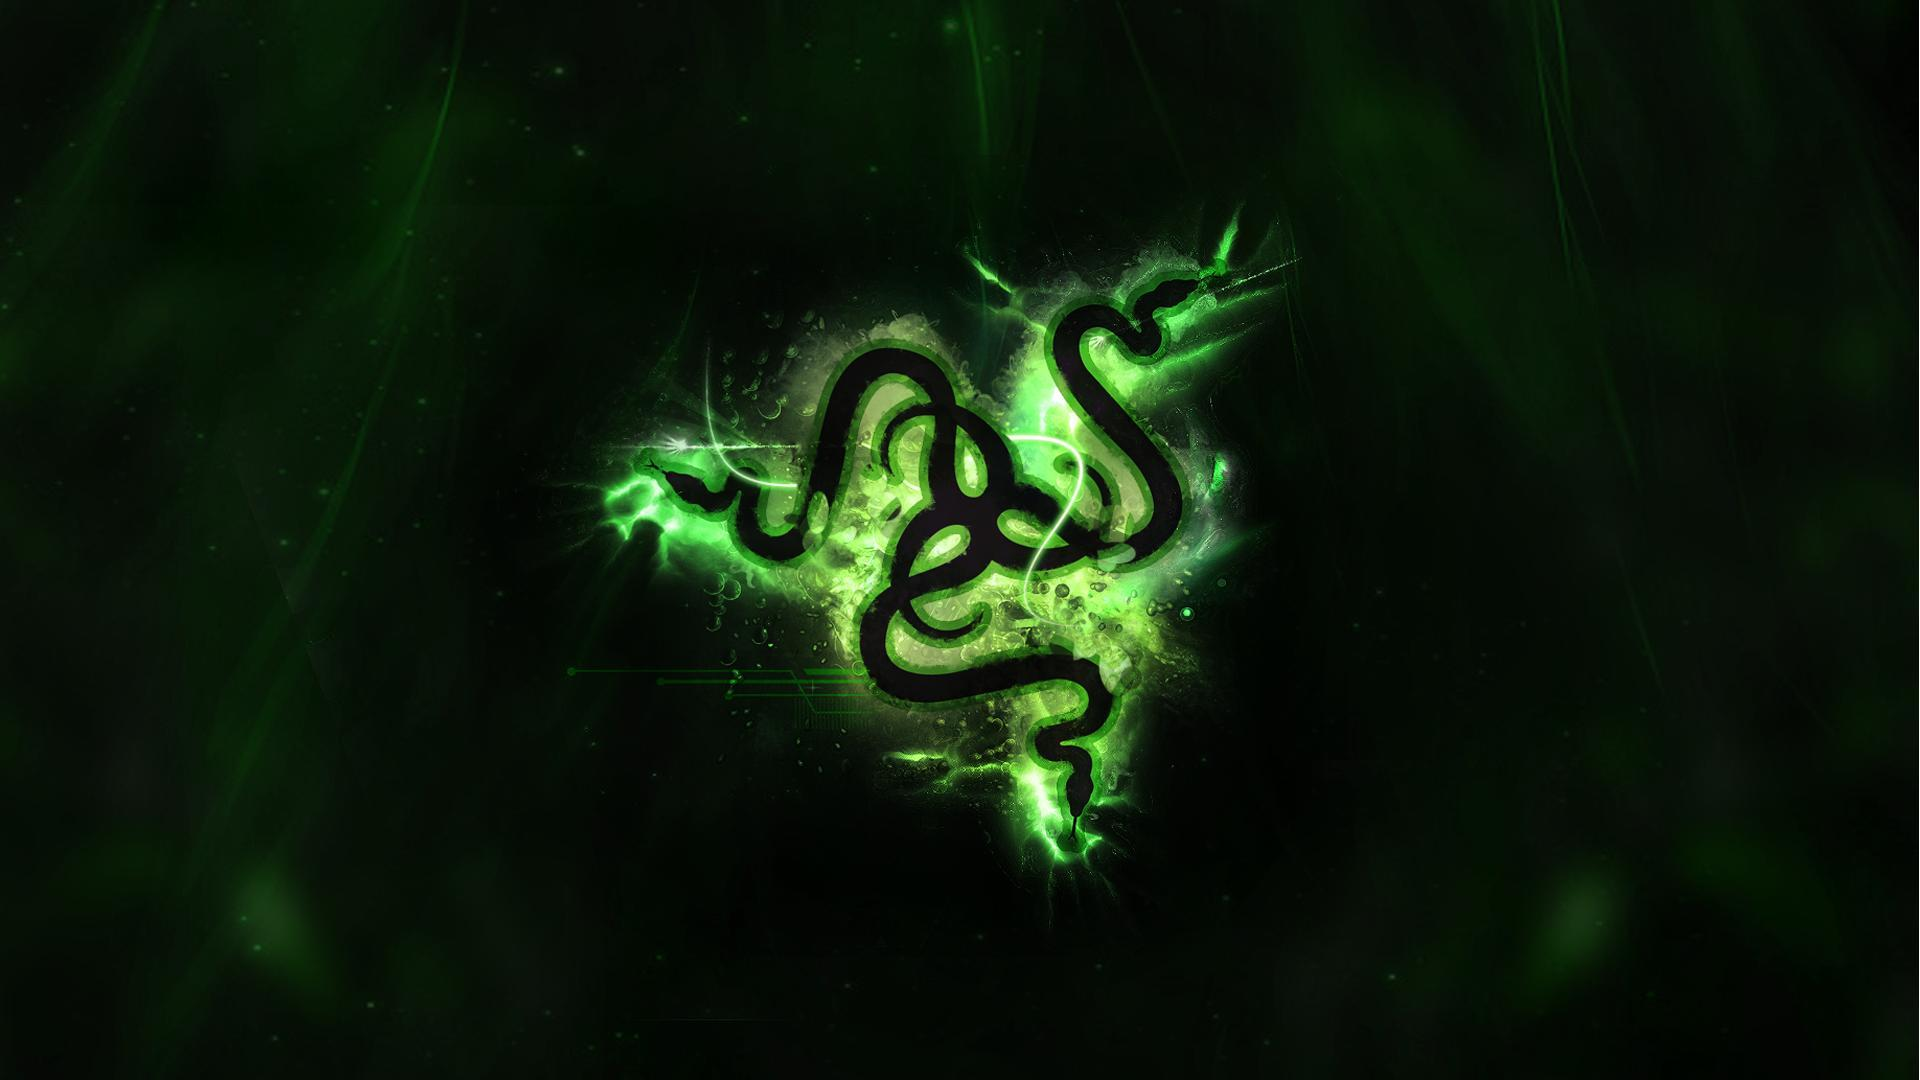 Razer Wallpapers Hd Wallpaper Cave